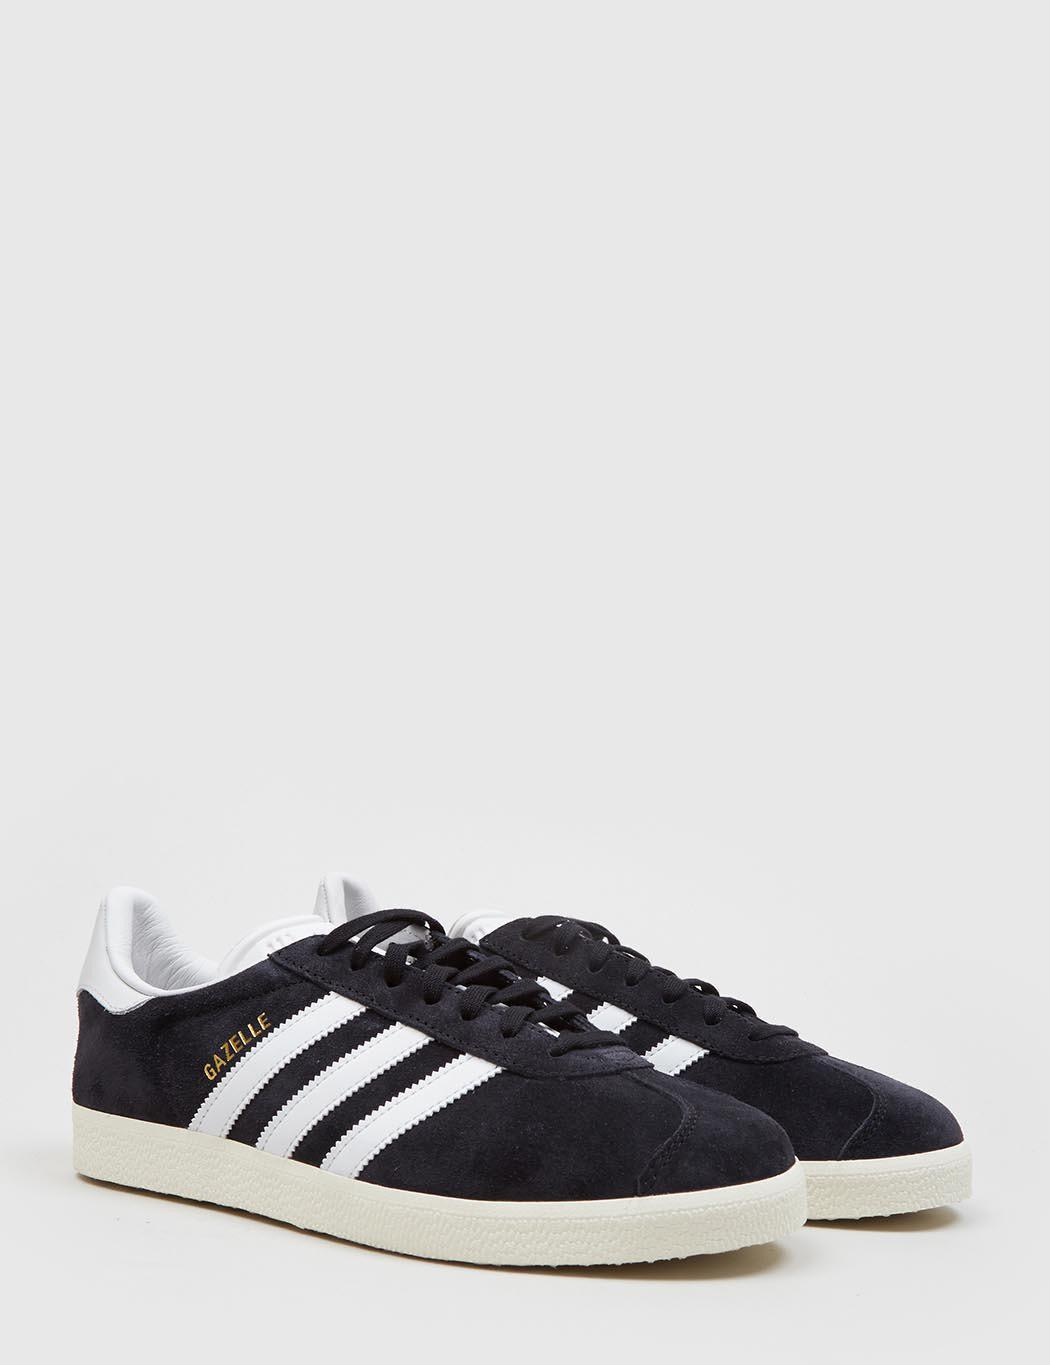 new product 0fcfa b75e4 Lyst - adidas Originals Adidas Gazelle Sneakers in Black - S